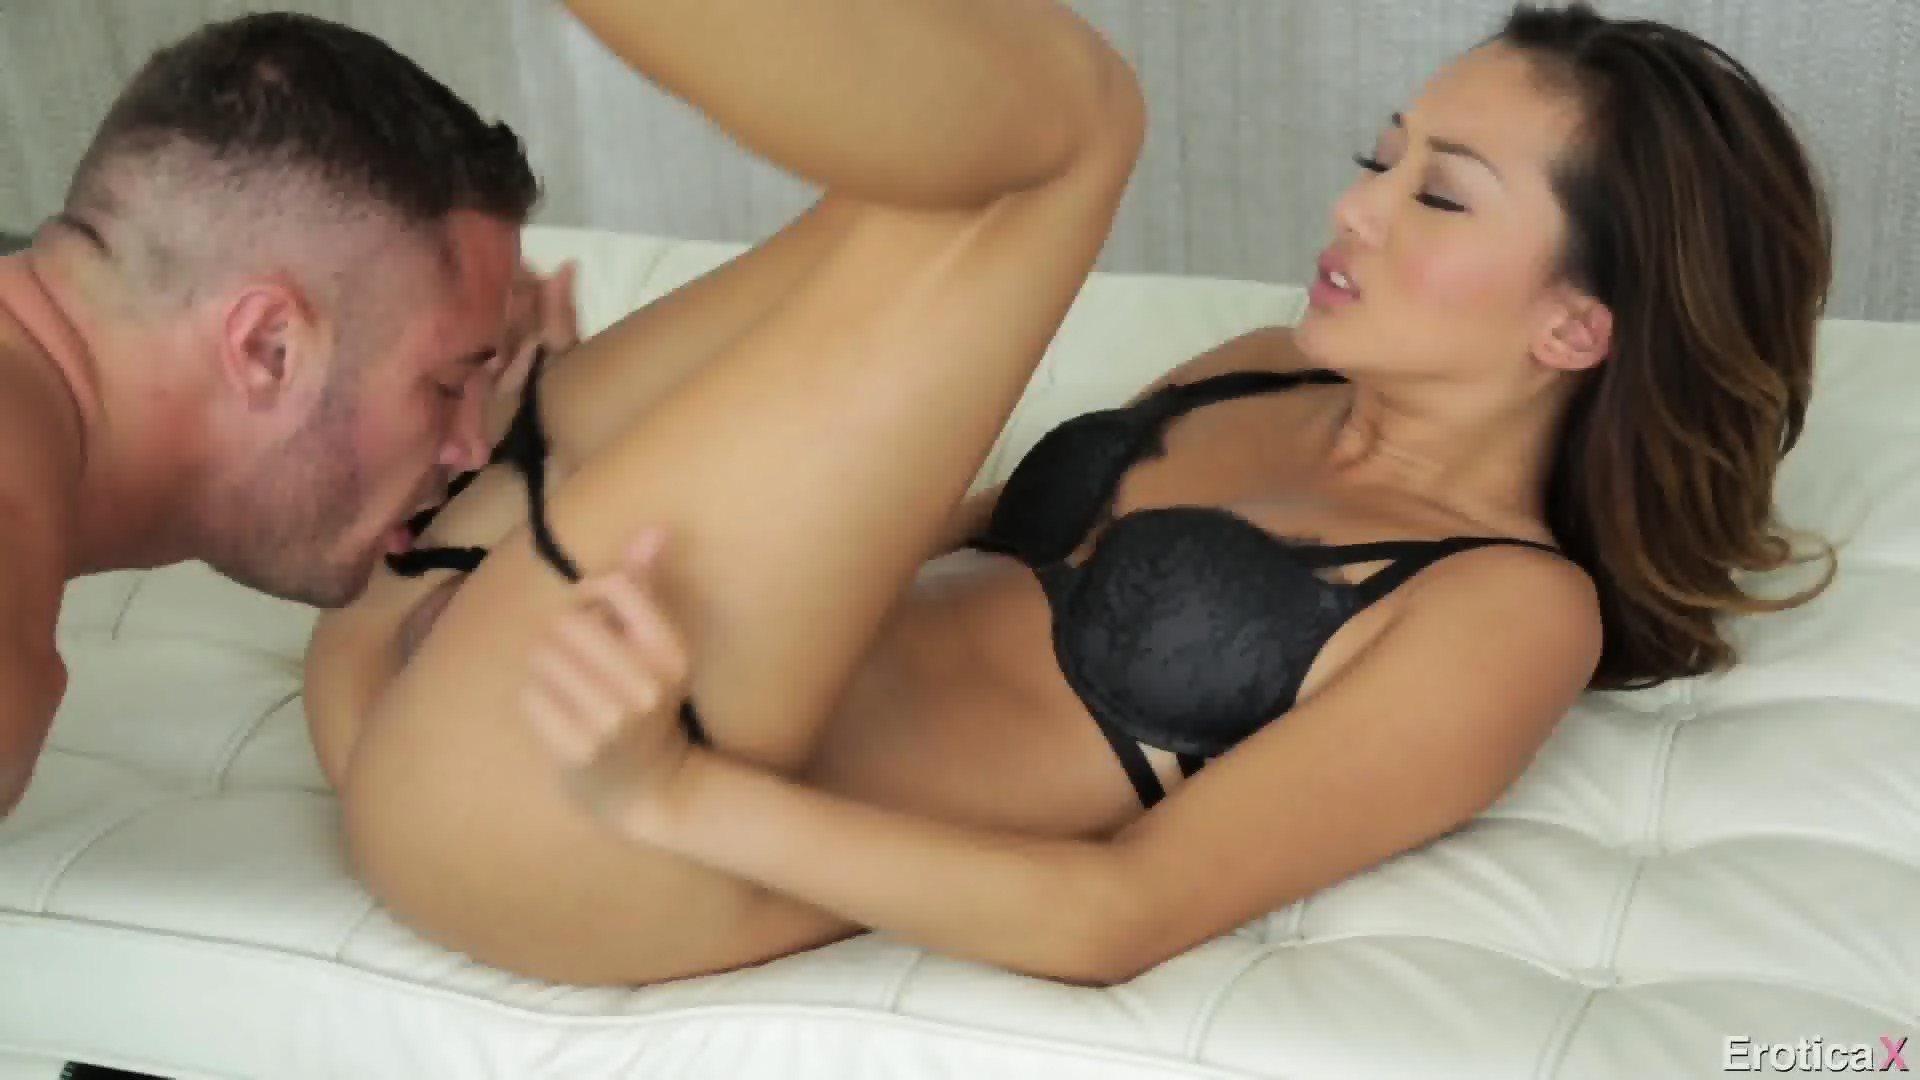 image Horny little asian fucks and rubs her pussy with dildo and vibrators